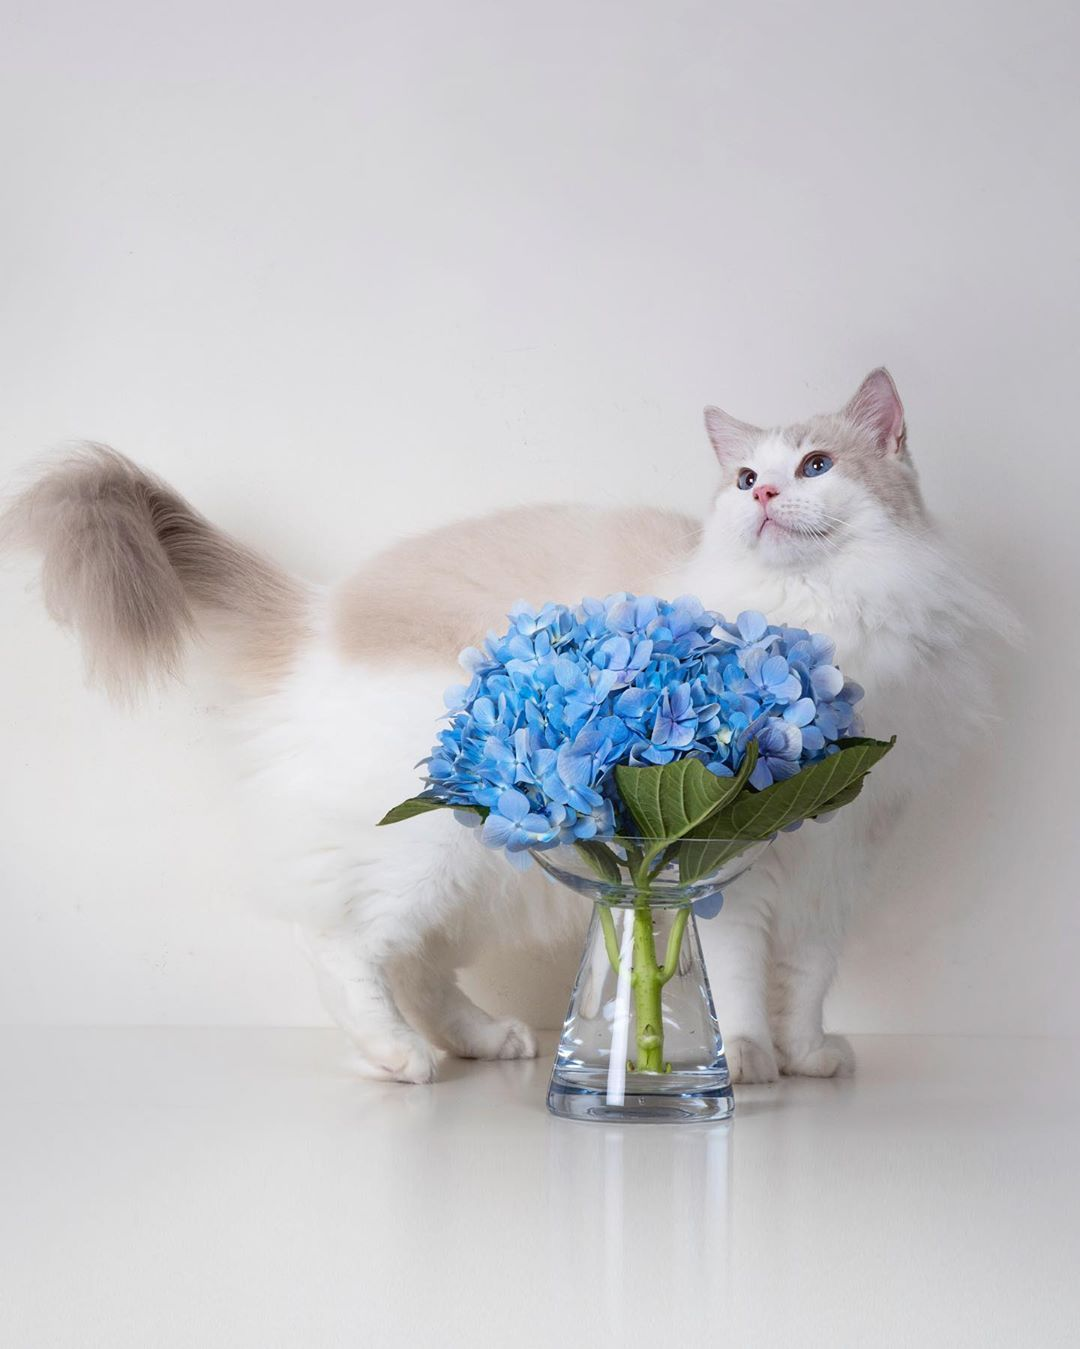 Be Like A Flower Just Bloom Dontcompete Happycaturday Hydrangeas We Just Learnt Th Resim